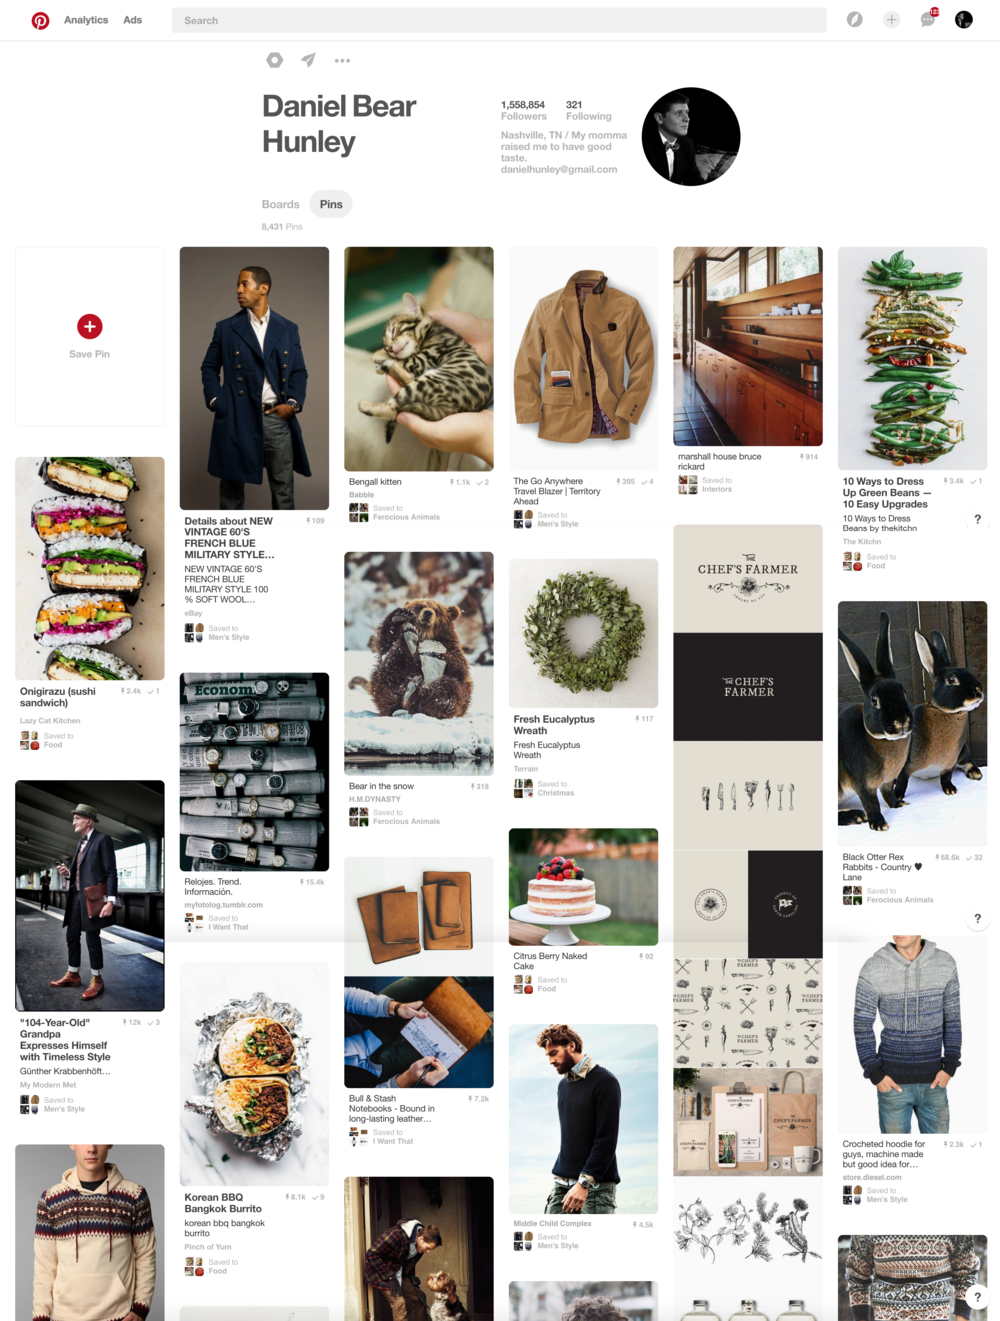 Daniel Bear Hunley is a Pinterest Influencer, with a following of 1.5 million. He's curated over 8k images that reflect a clear, consistent aesthetic that's appealing to both followers and brands interested in influencer marketing.   Daniel Bear Hunley's Pinterest